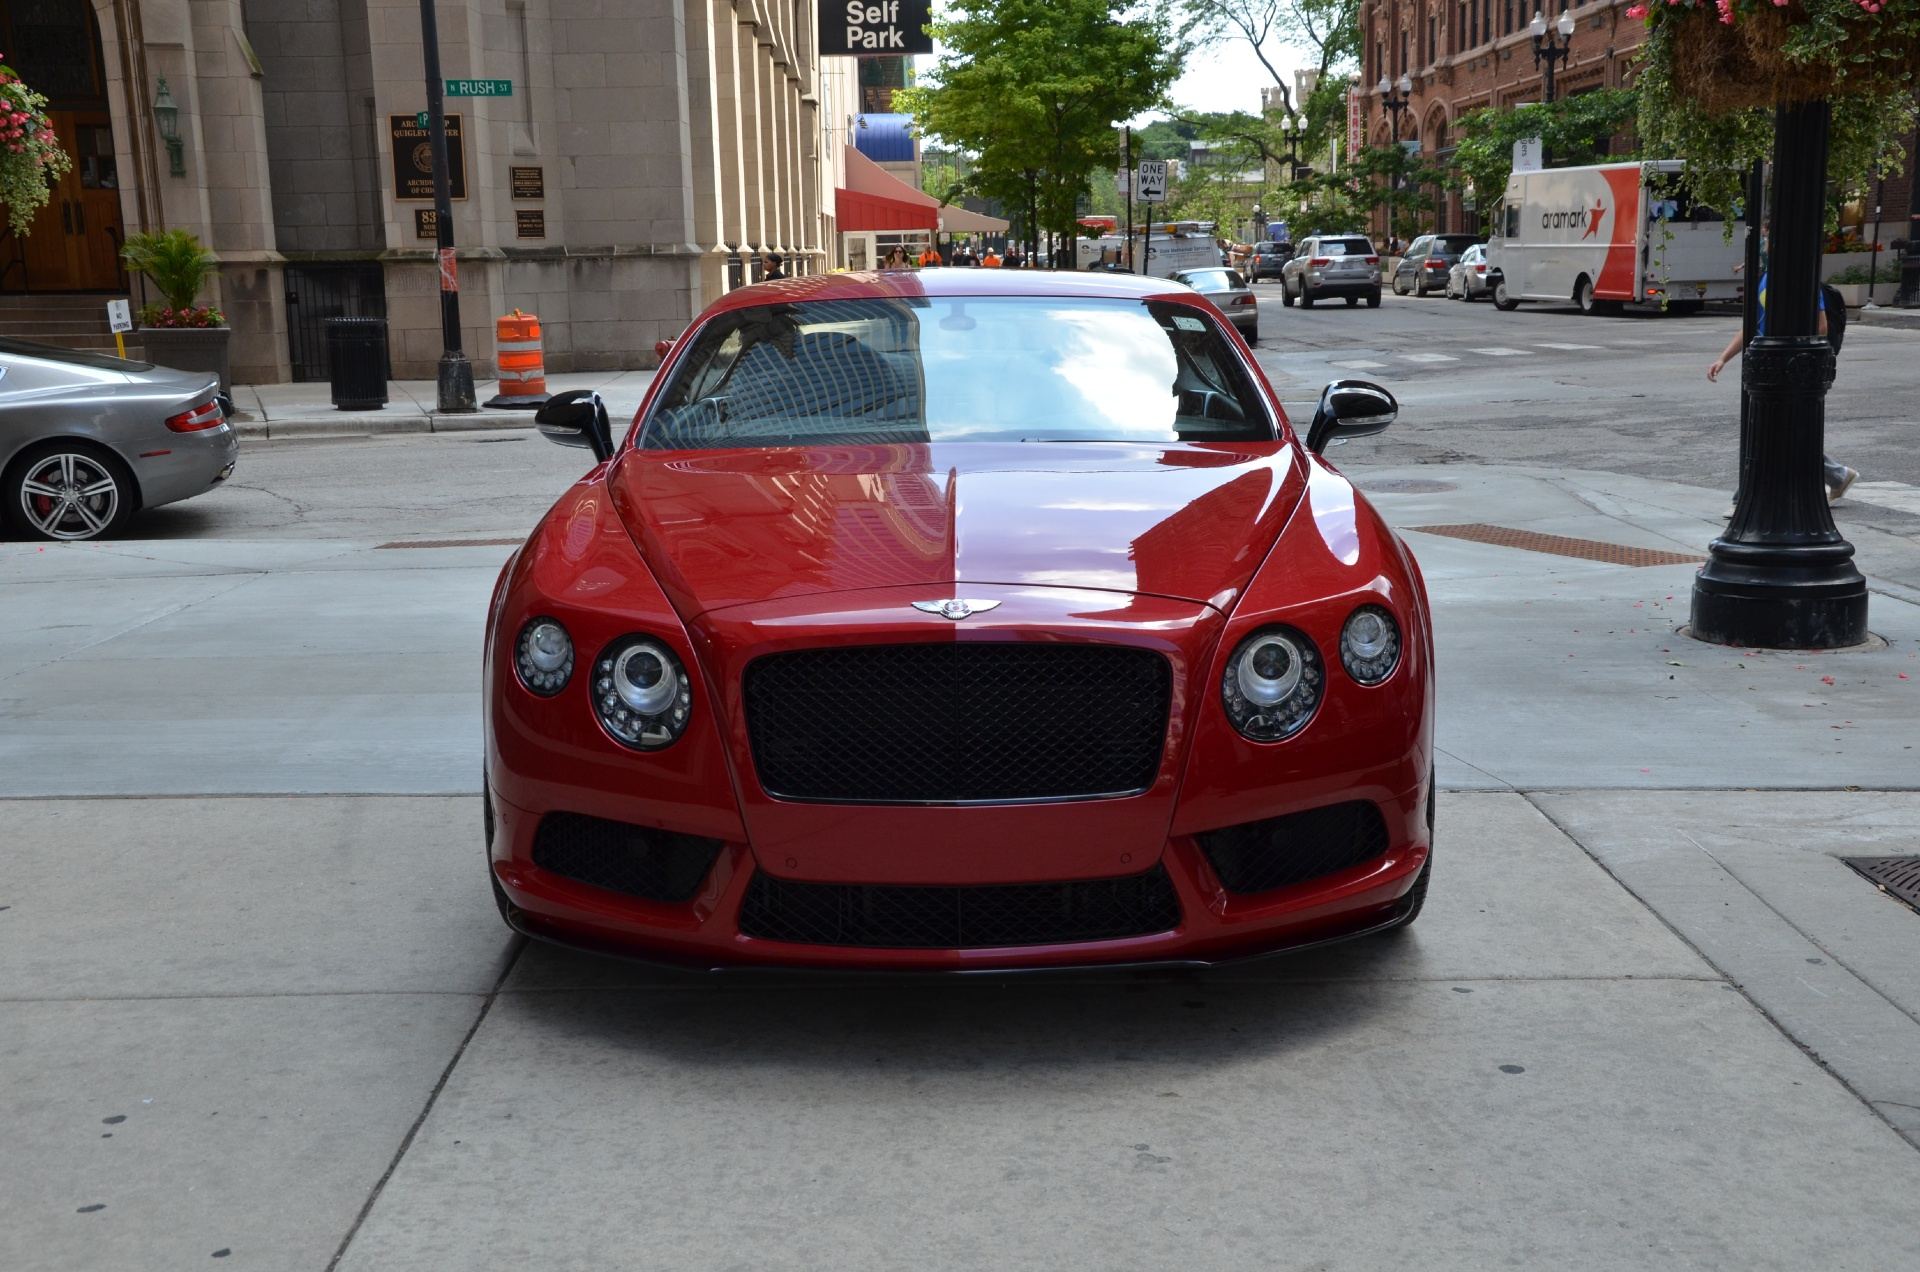 2015 bentley continental gt v8 s stock b713 s for sale near chicago il il bentley dealer. Black Bedroom Furniture Sets. Home Design Ideas